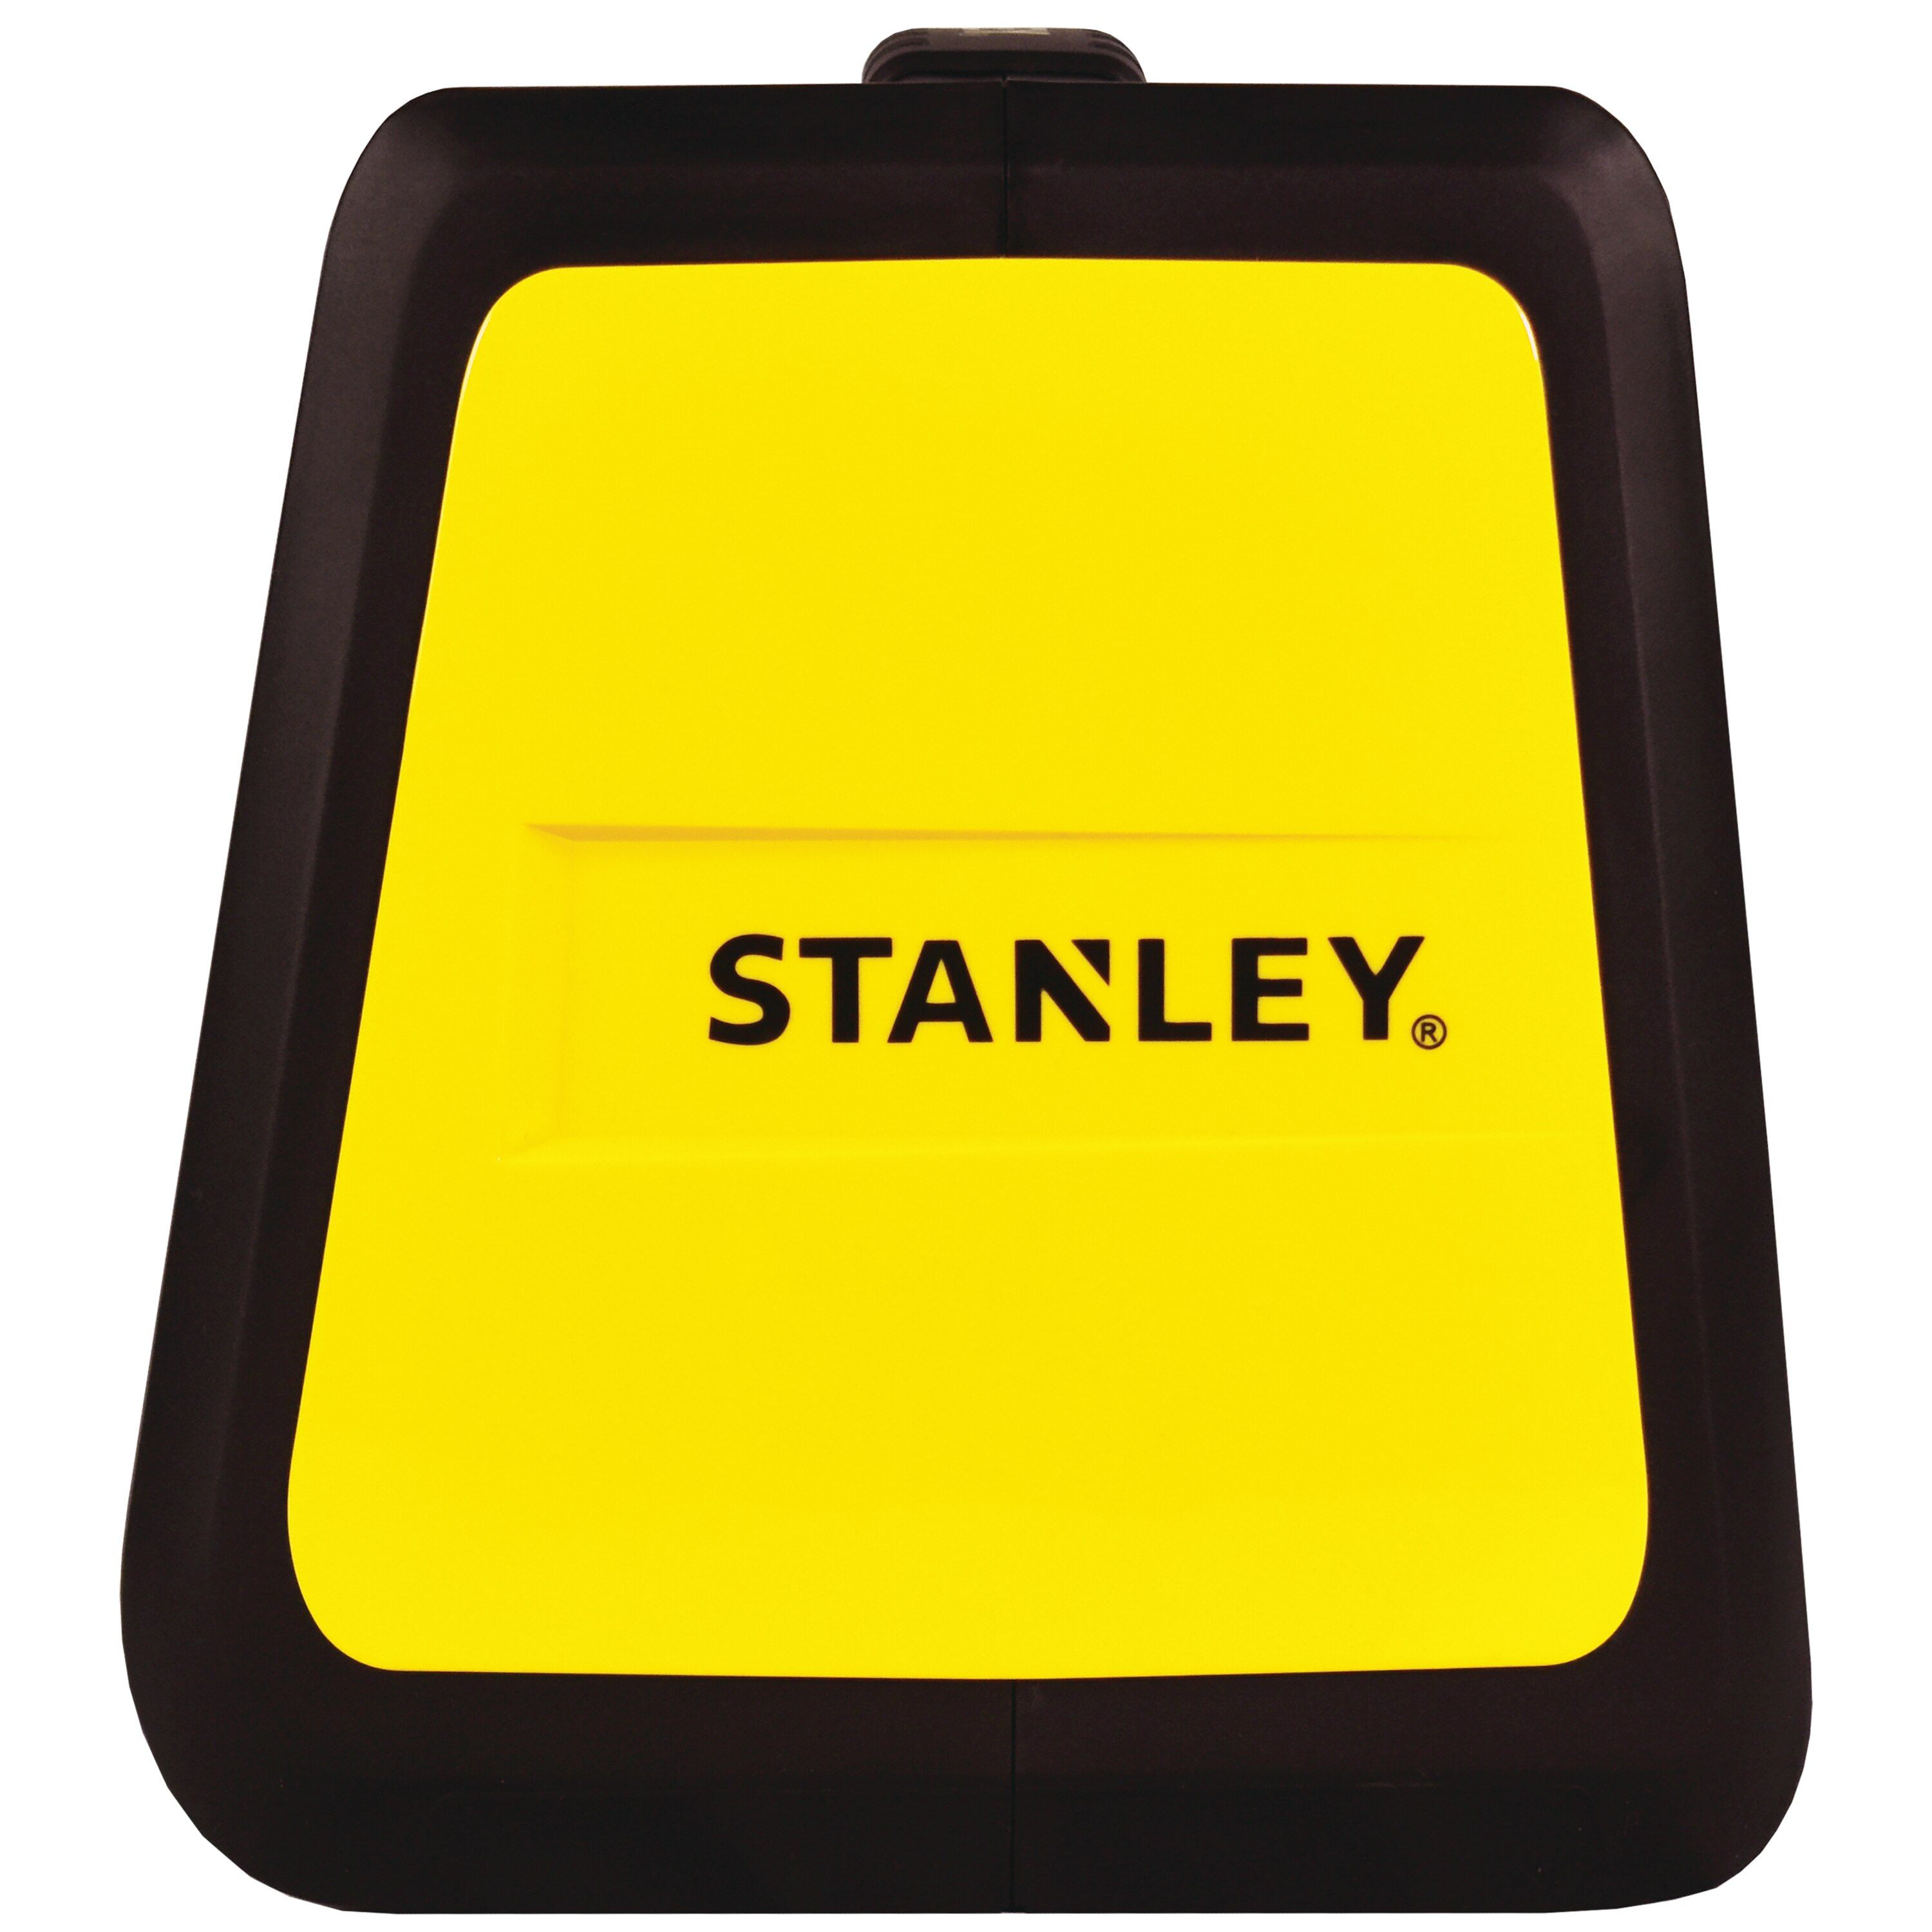 Stanley Tools - Low Profile Electric Heater 1500 W - ST-221A-120